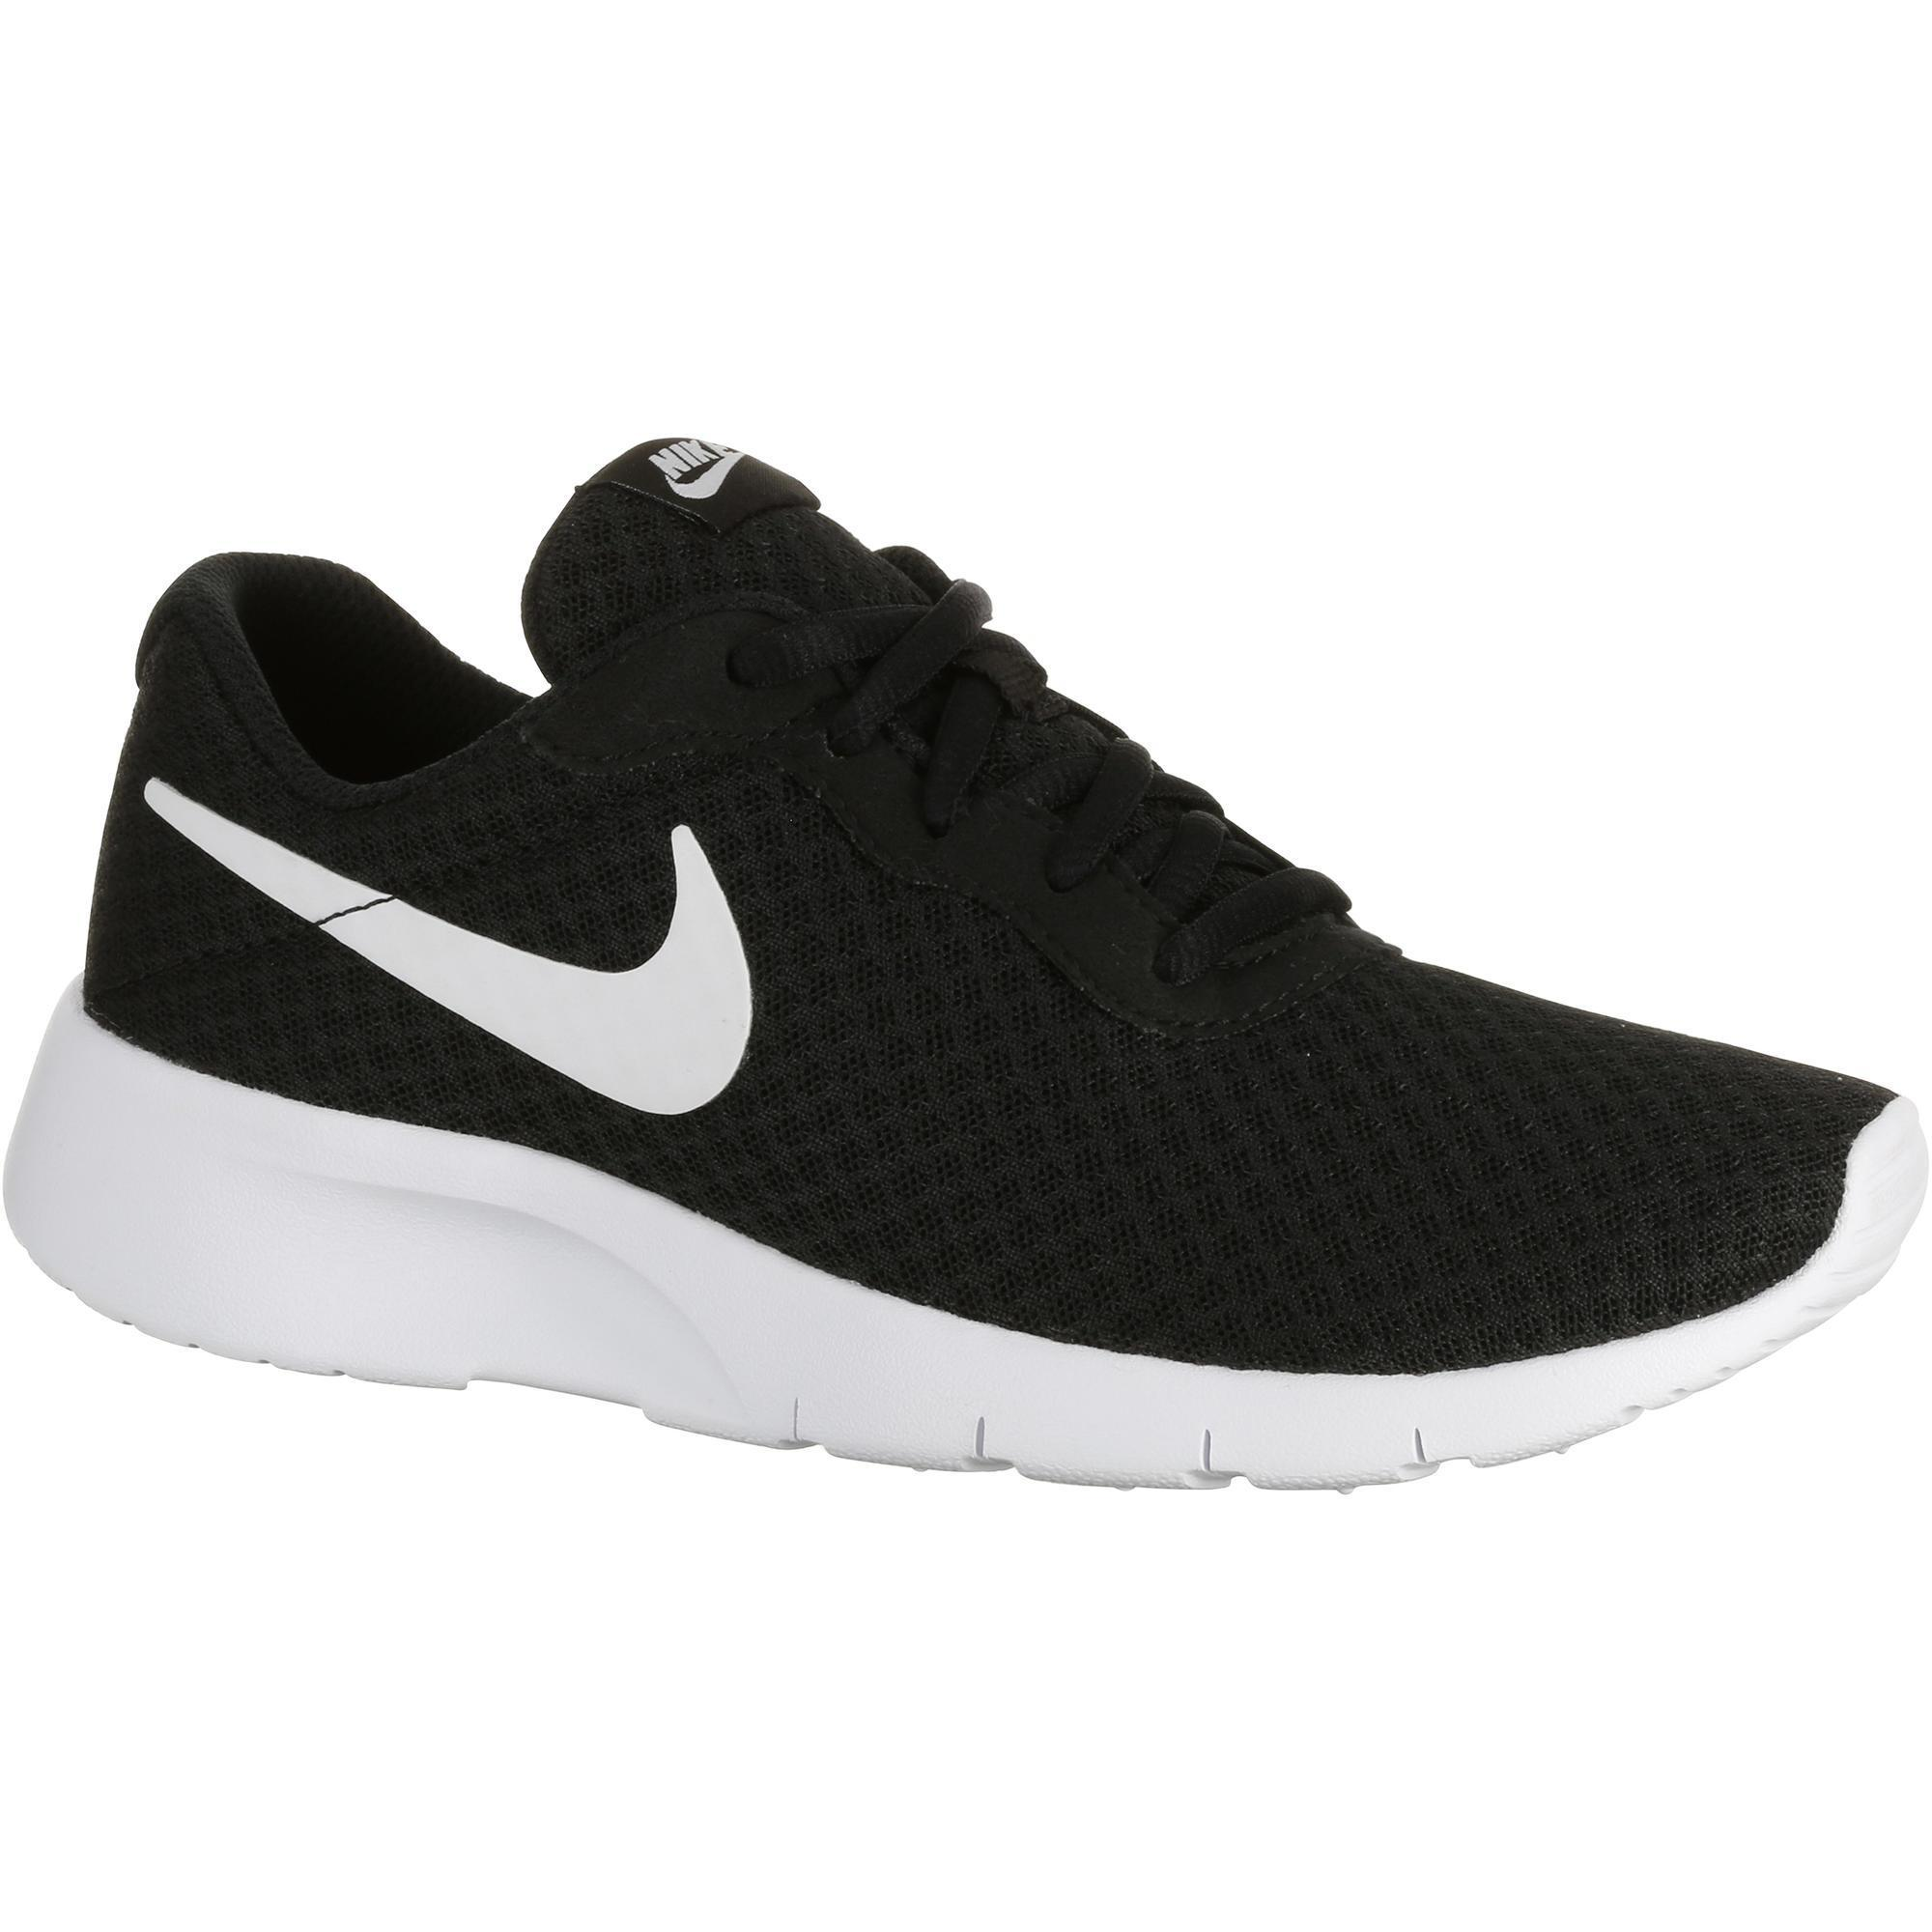 Nike ENFANT , Decathlon